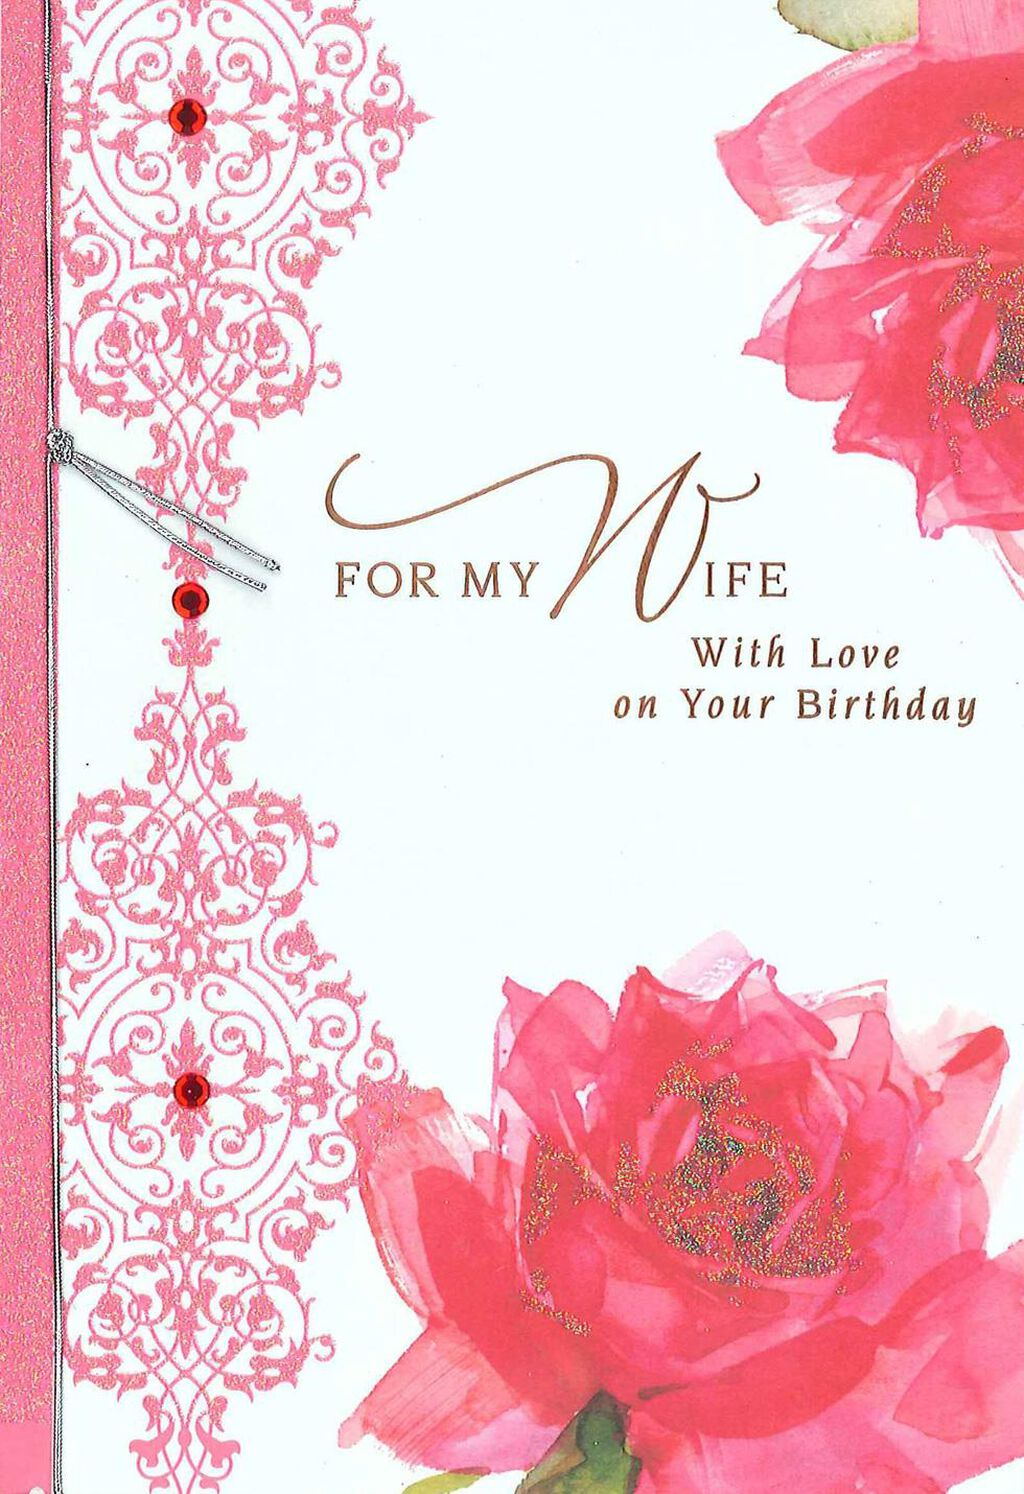 Sharing lifes journey birthday card for wife greeting cards sharing lifes journey birthday card for wife greeting cards hallmark izmirmasajfo